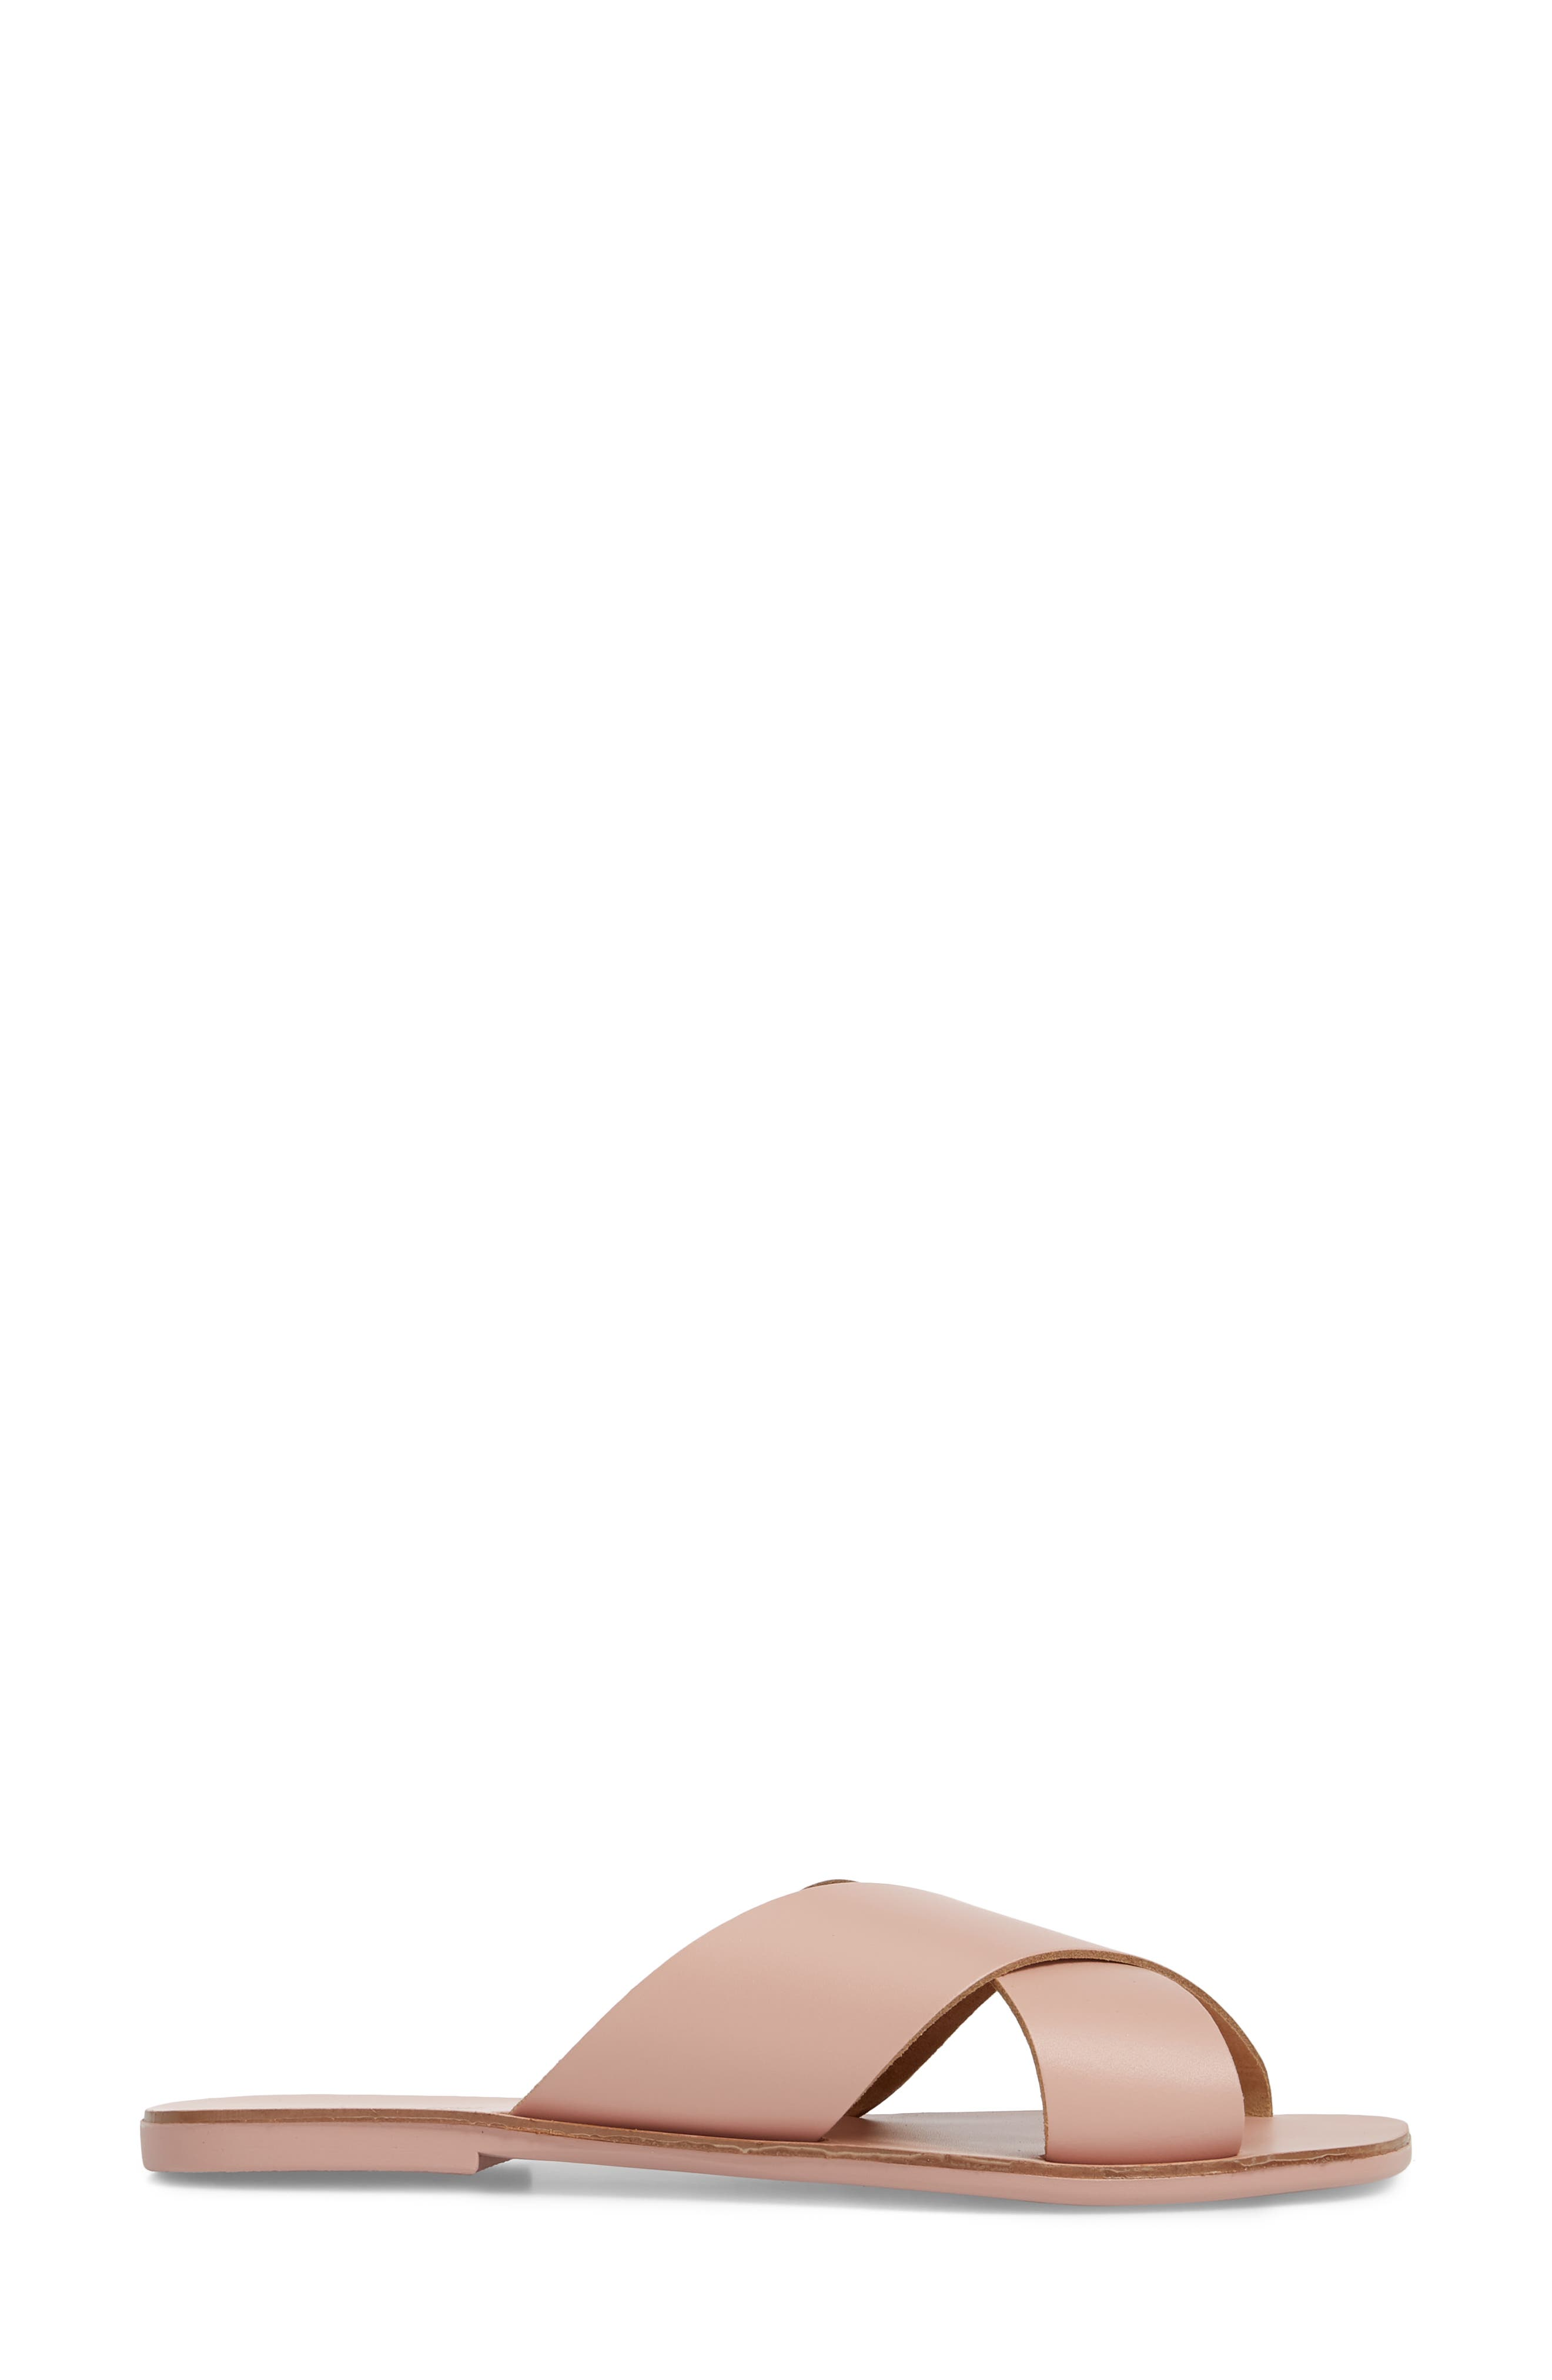 Total Relaxation Slide Sandal,                             Alternate thumbnail 3, color,                             Pink Leather